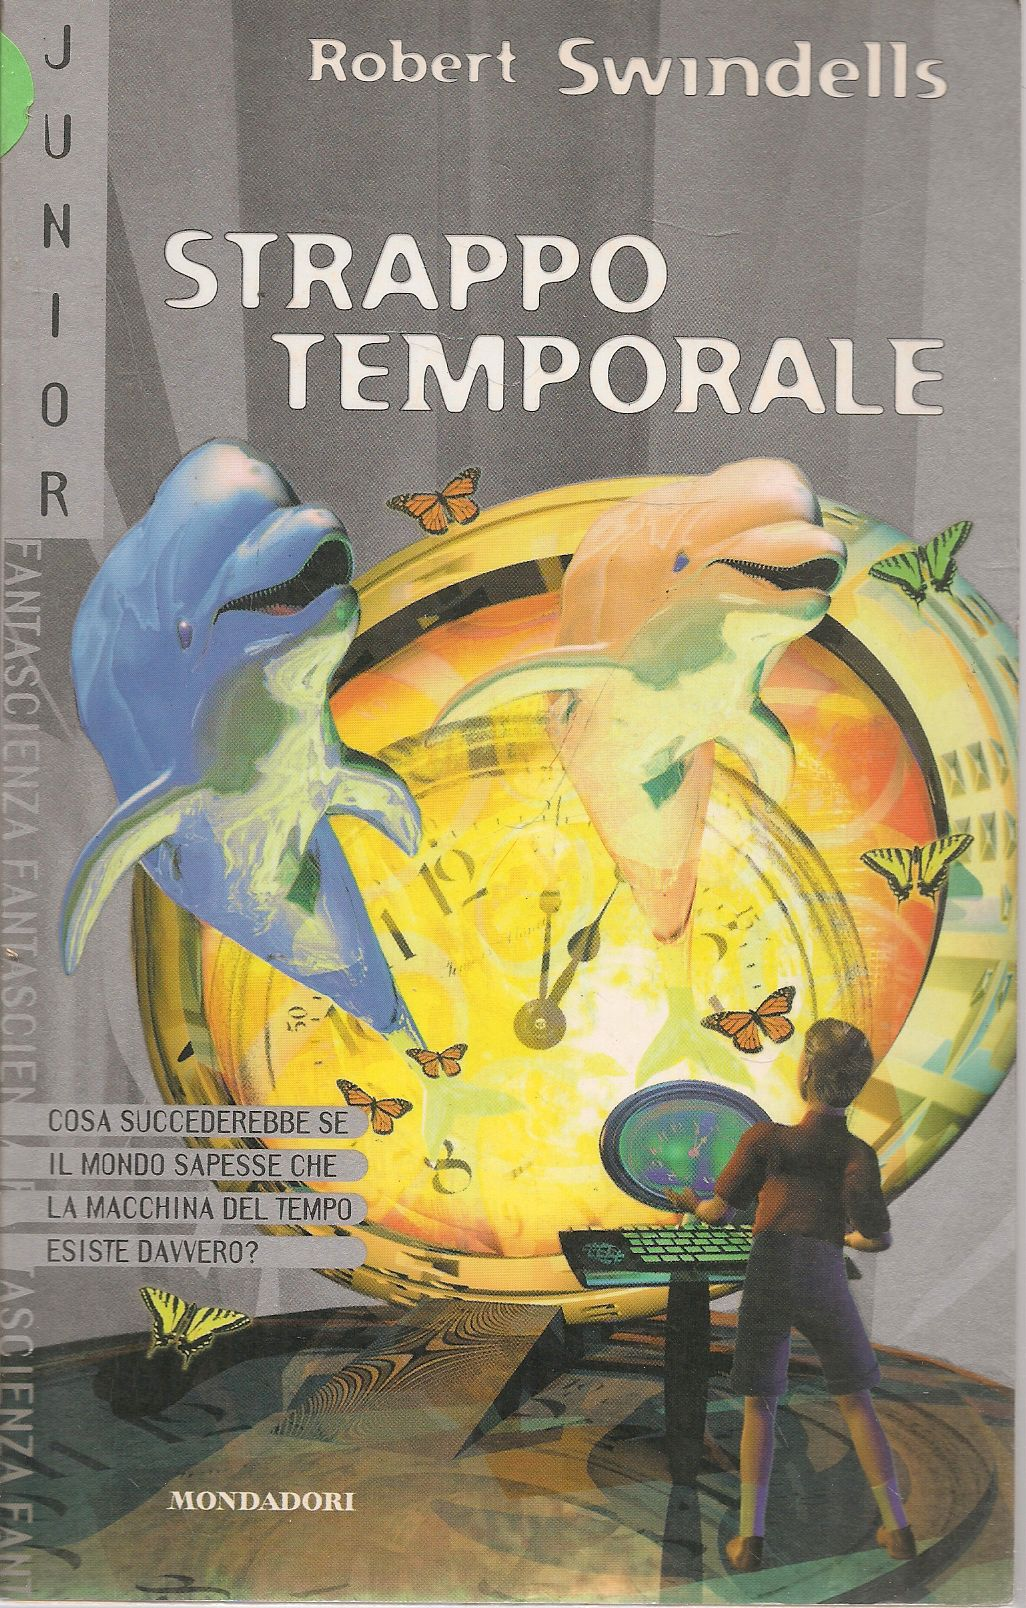 STRAPPO TEMPORALE - ROBERT SWINDELLS